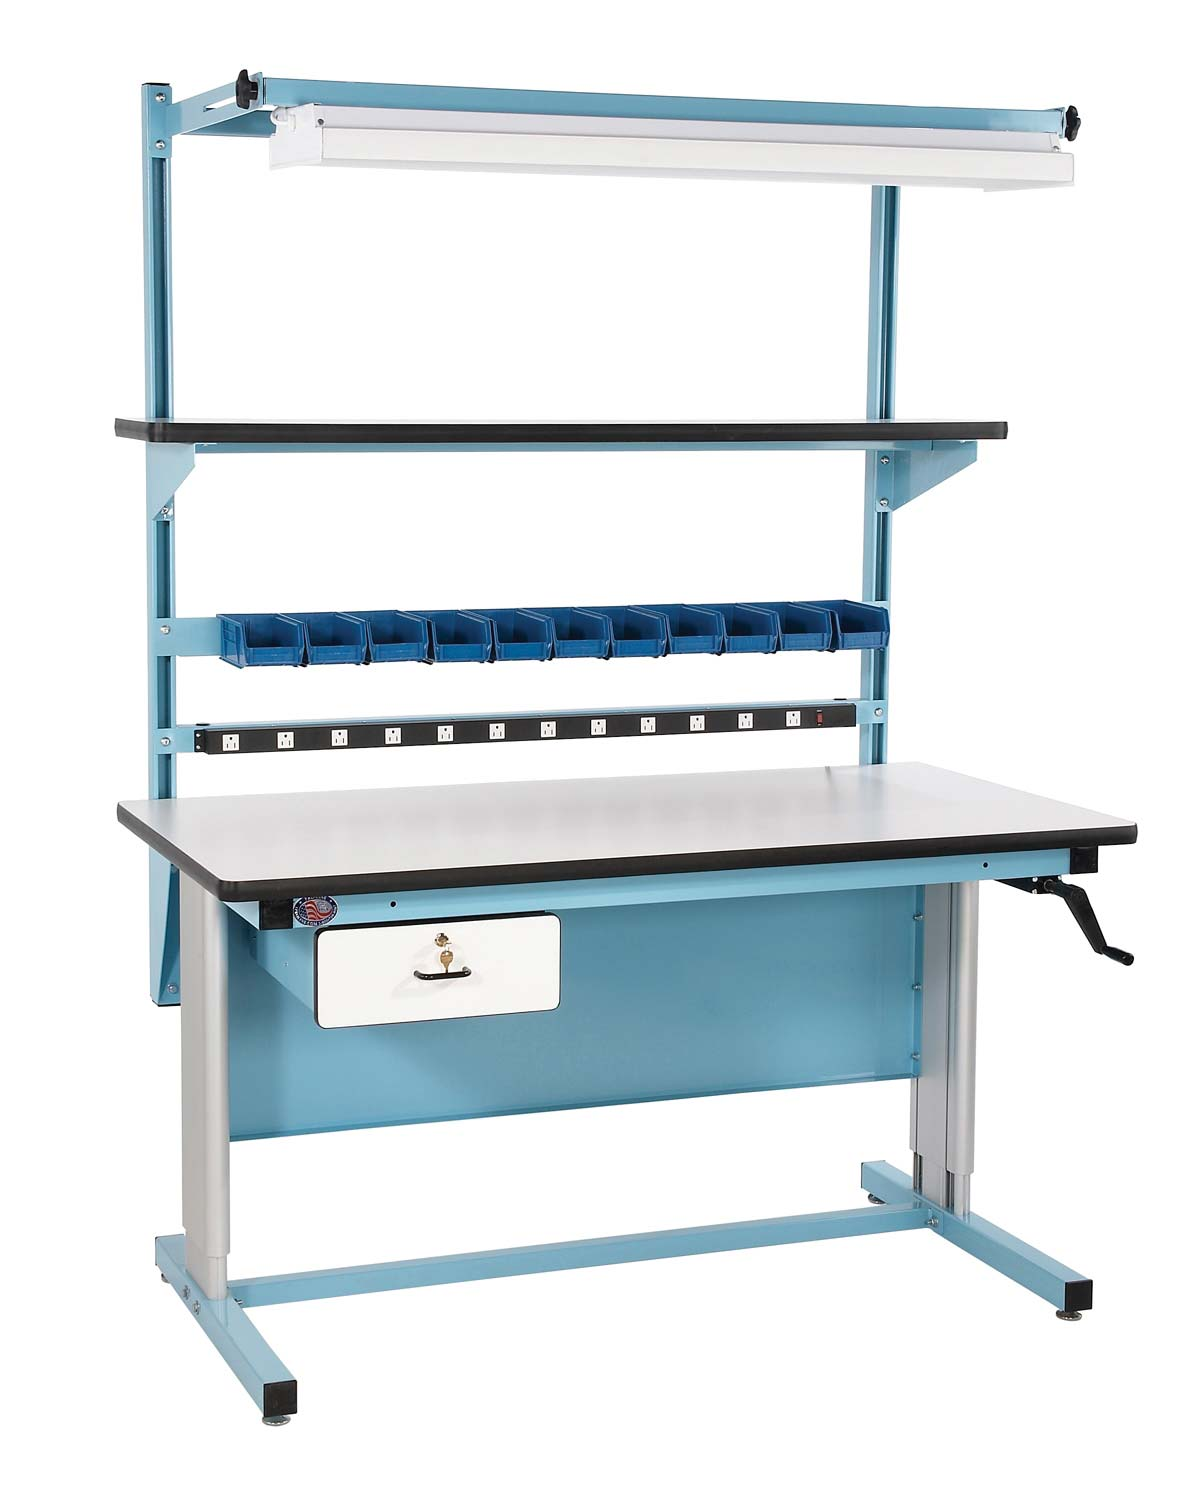 Bench In A Box Pro Line Series Pro Line Workbenches